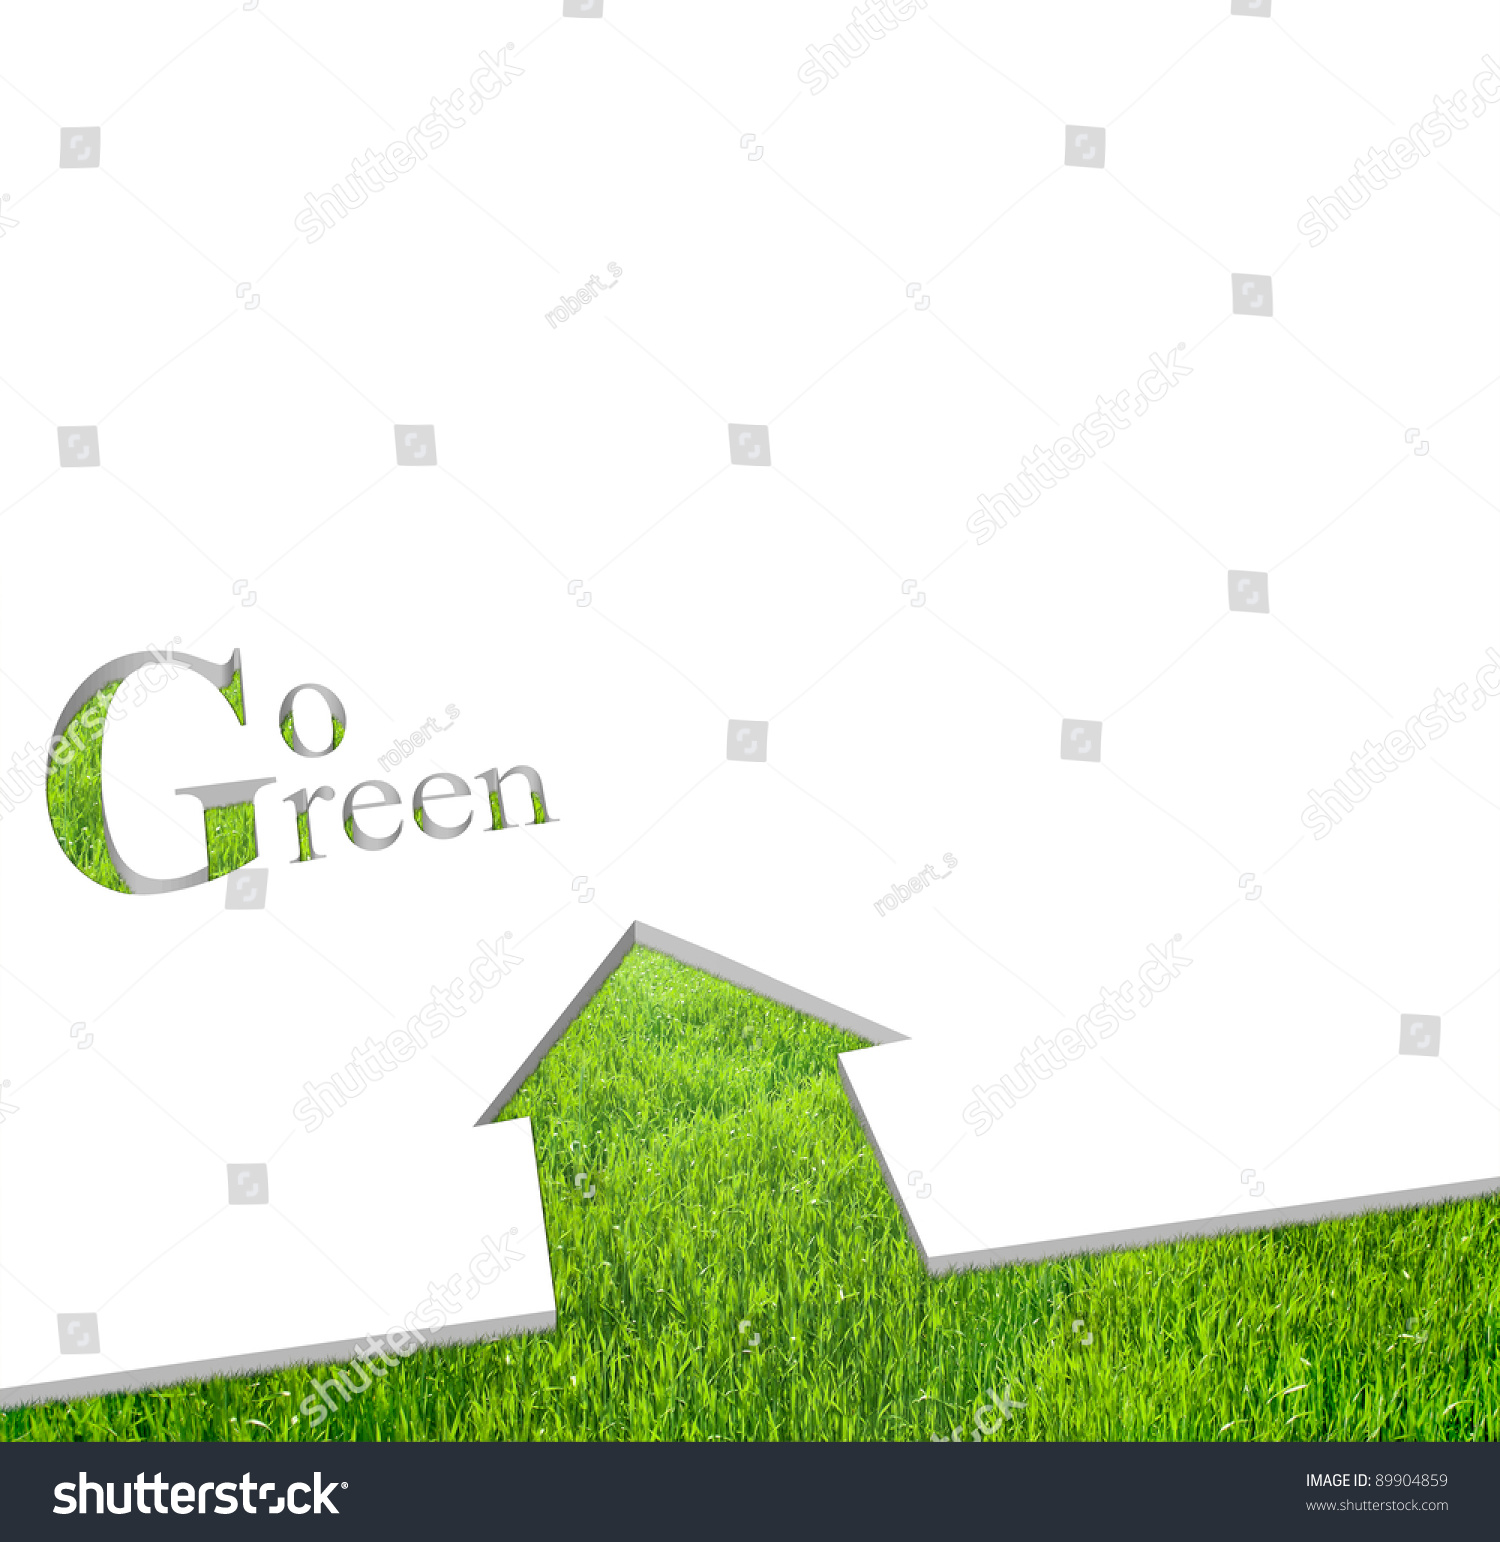 the concept of go green in Gift of earth  the first novel green gifting concept introduced by go green, breaks all the traditional ways of gifting like flowers, bouquets, chocolates, etc.